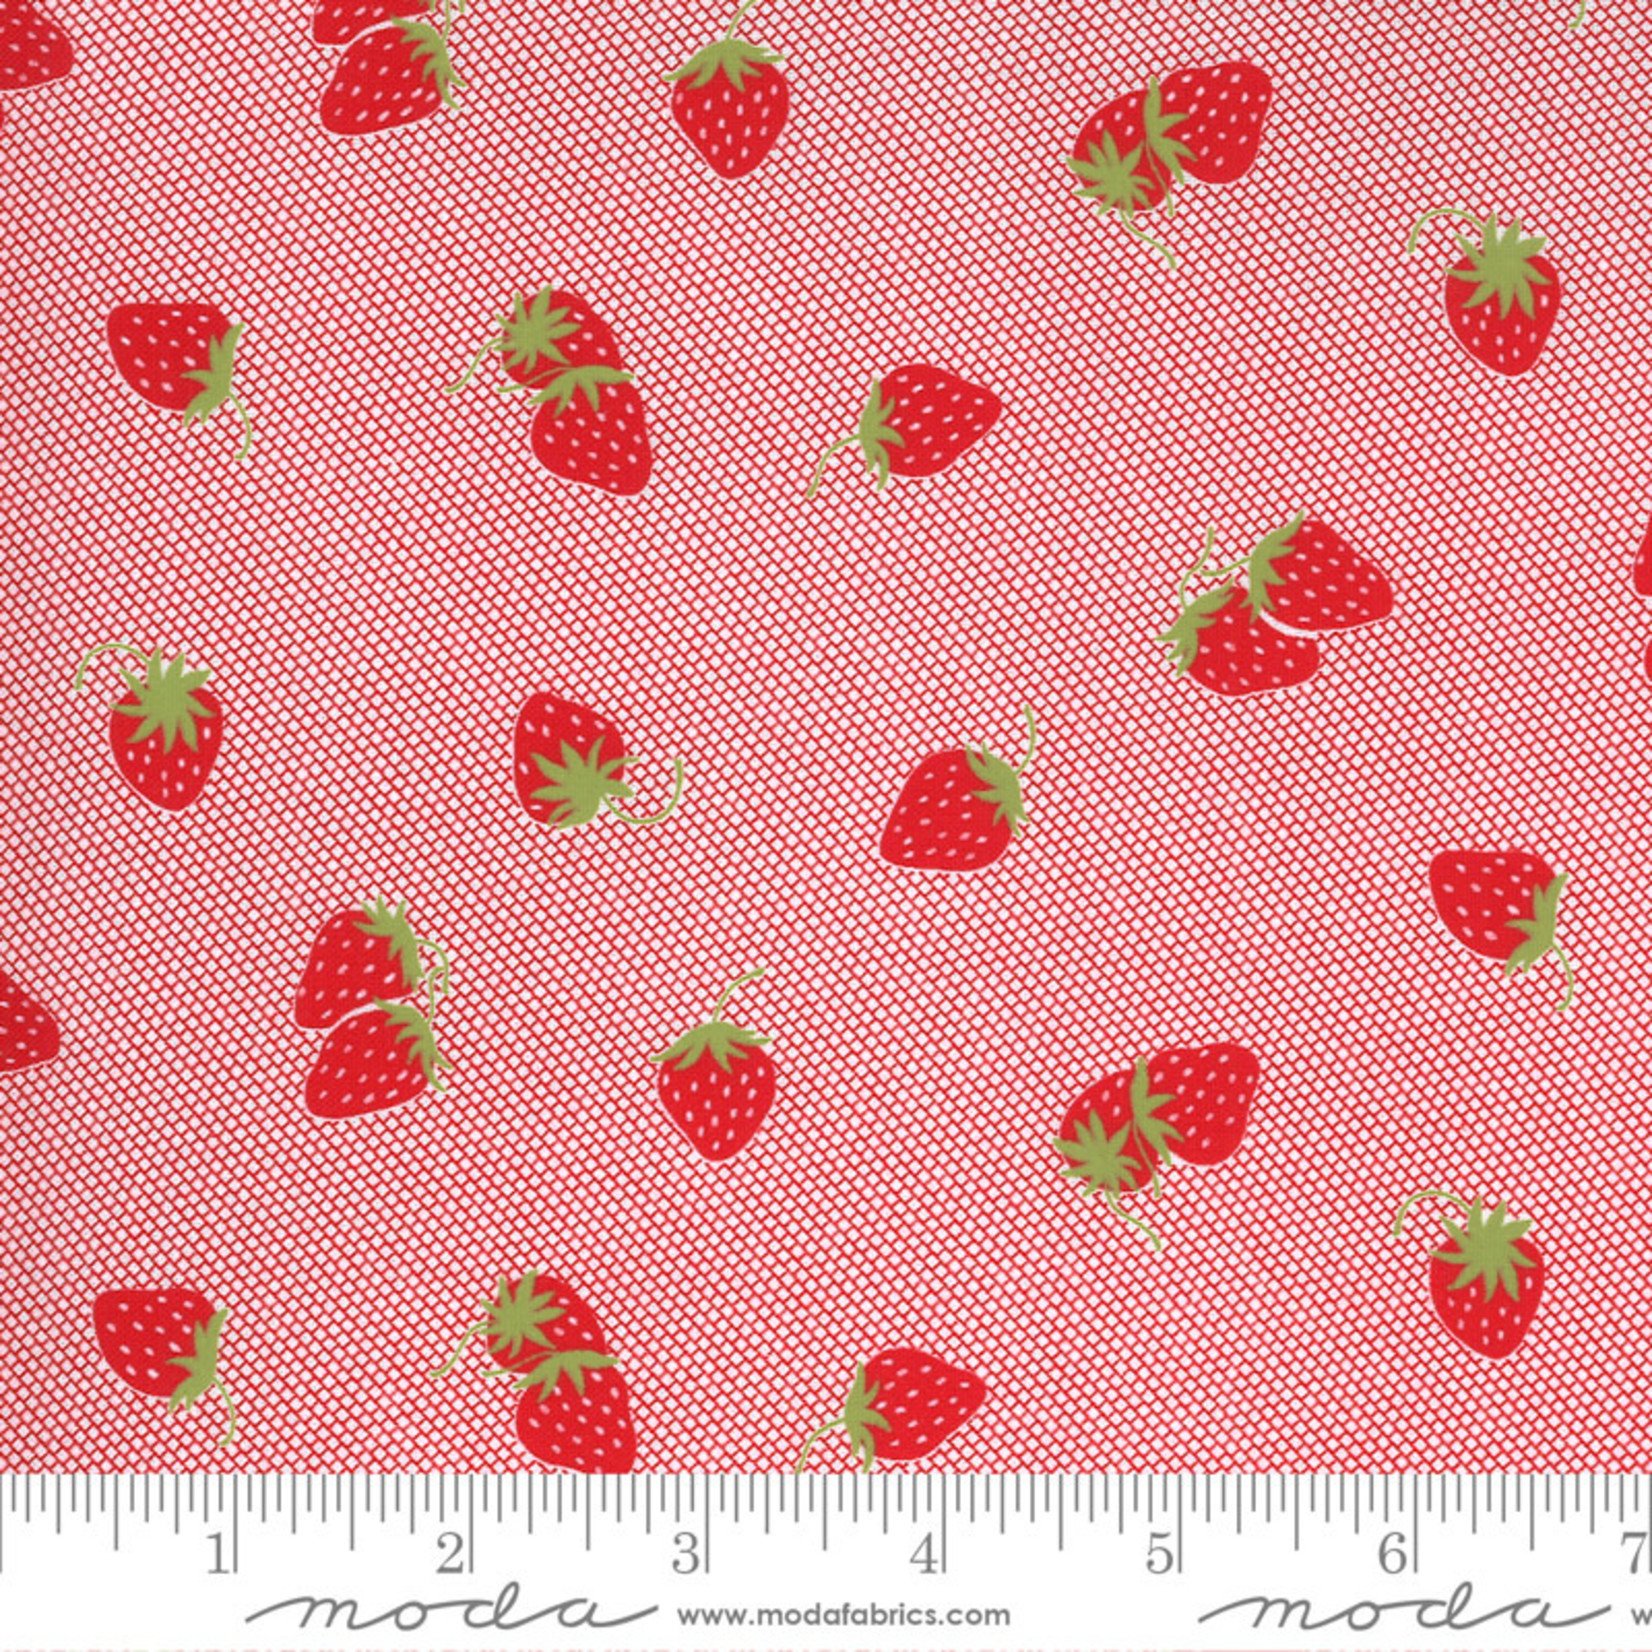 Bonnie & Camille Sunday Stroll, Berry Patch, Red 55223 12 $0.20 per cm or $20/m